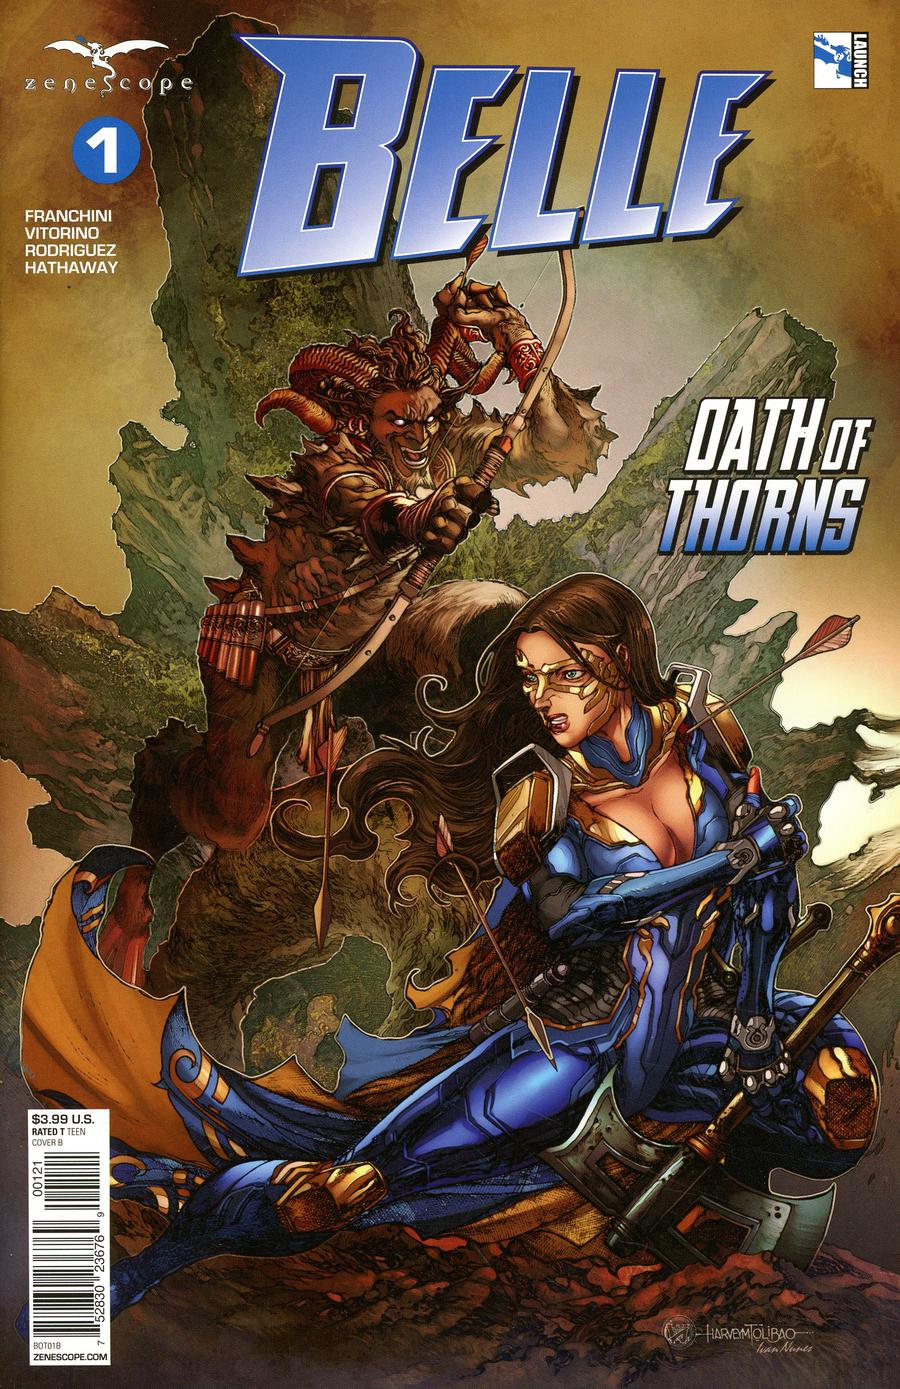 Grimm Fairy Tales Presents Belle Oath Of Thorns #1 Cover B Harvey Tolibao